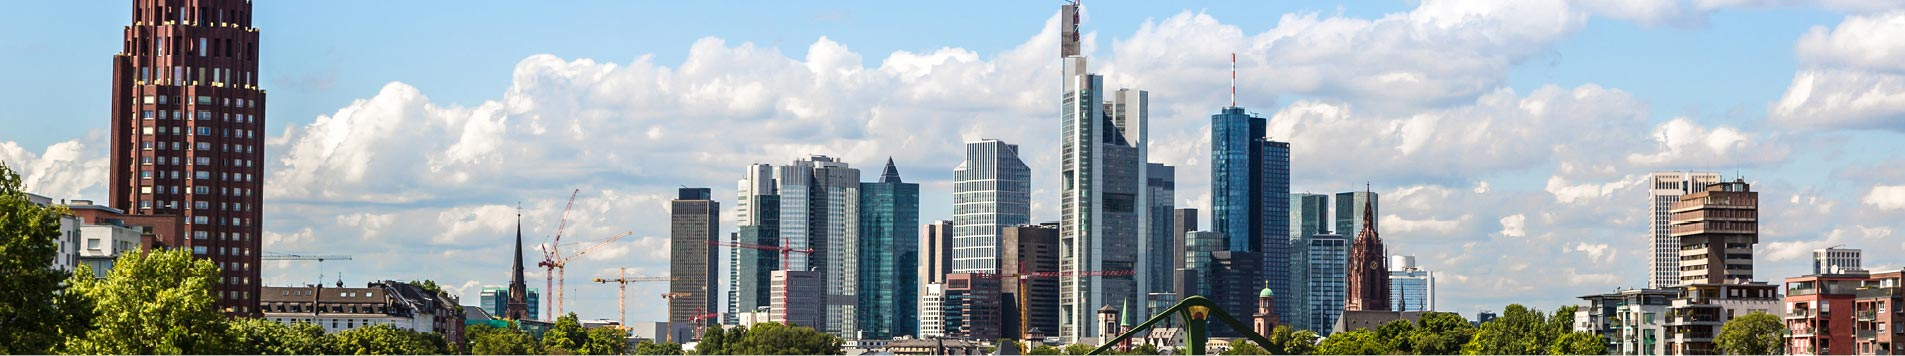 Medienresonanzanalyse Frankfurt am Main